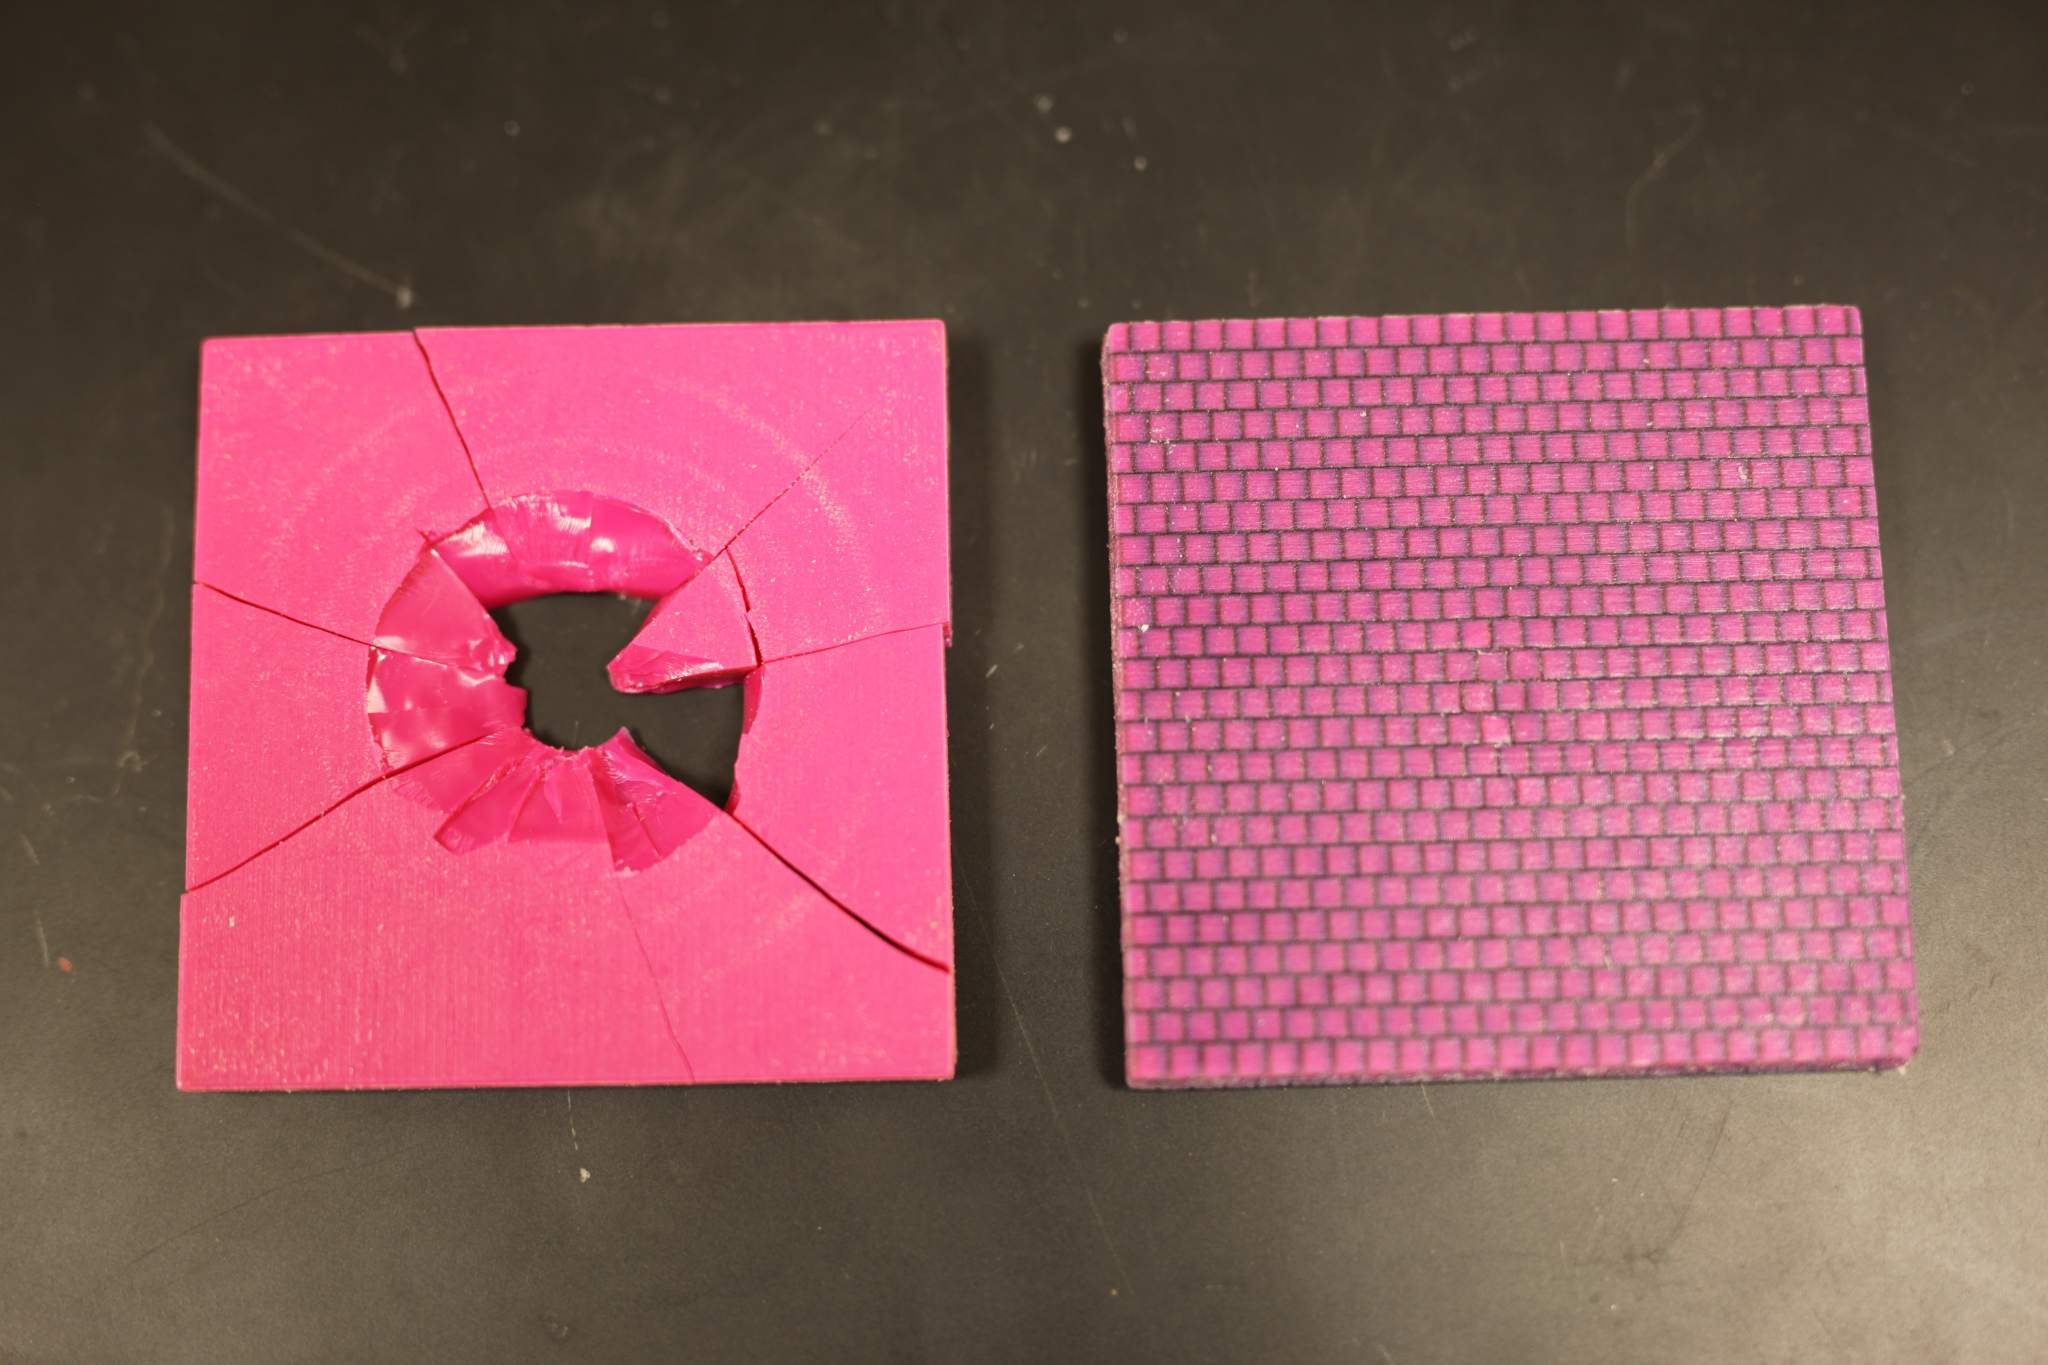 Post-testing of the conch like structure (right) and the basic material configuration (left). Photo via Melanie Gonick/MIT.